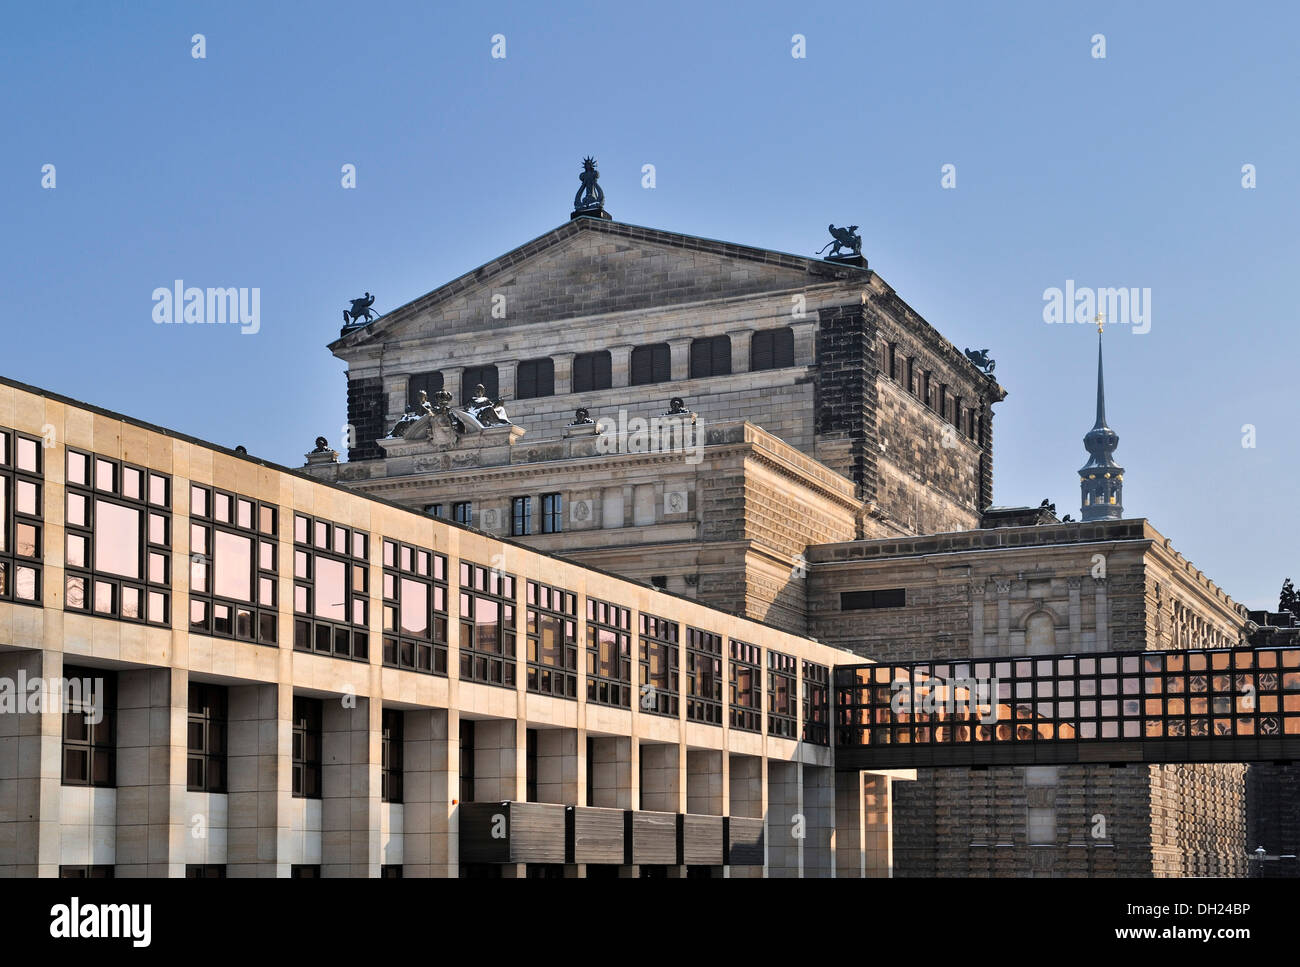 Semperoper Opera House with the adjoining function building at the rear, Dresden, Saxony, PublicGround - Stock Image